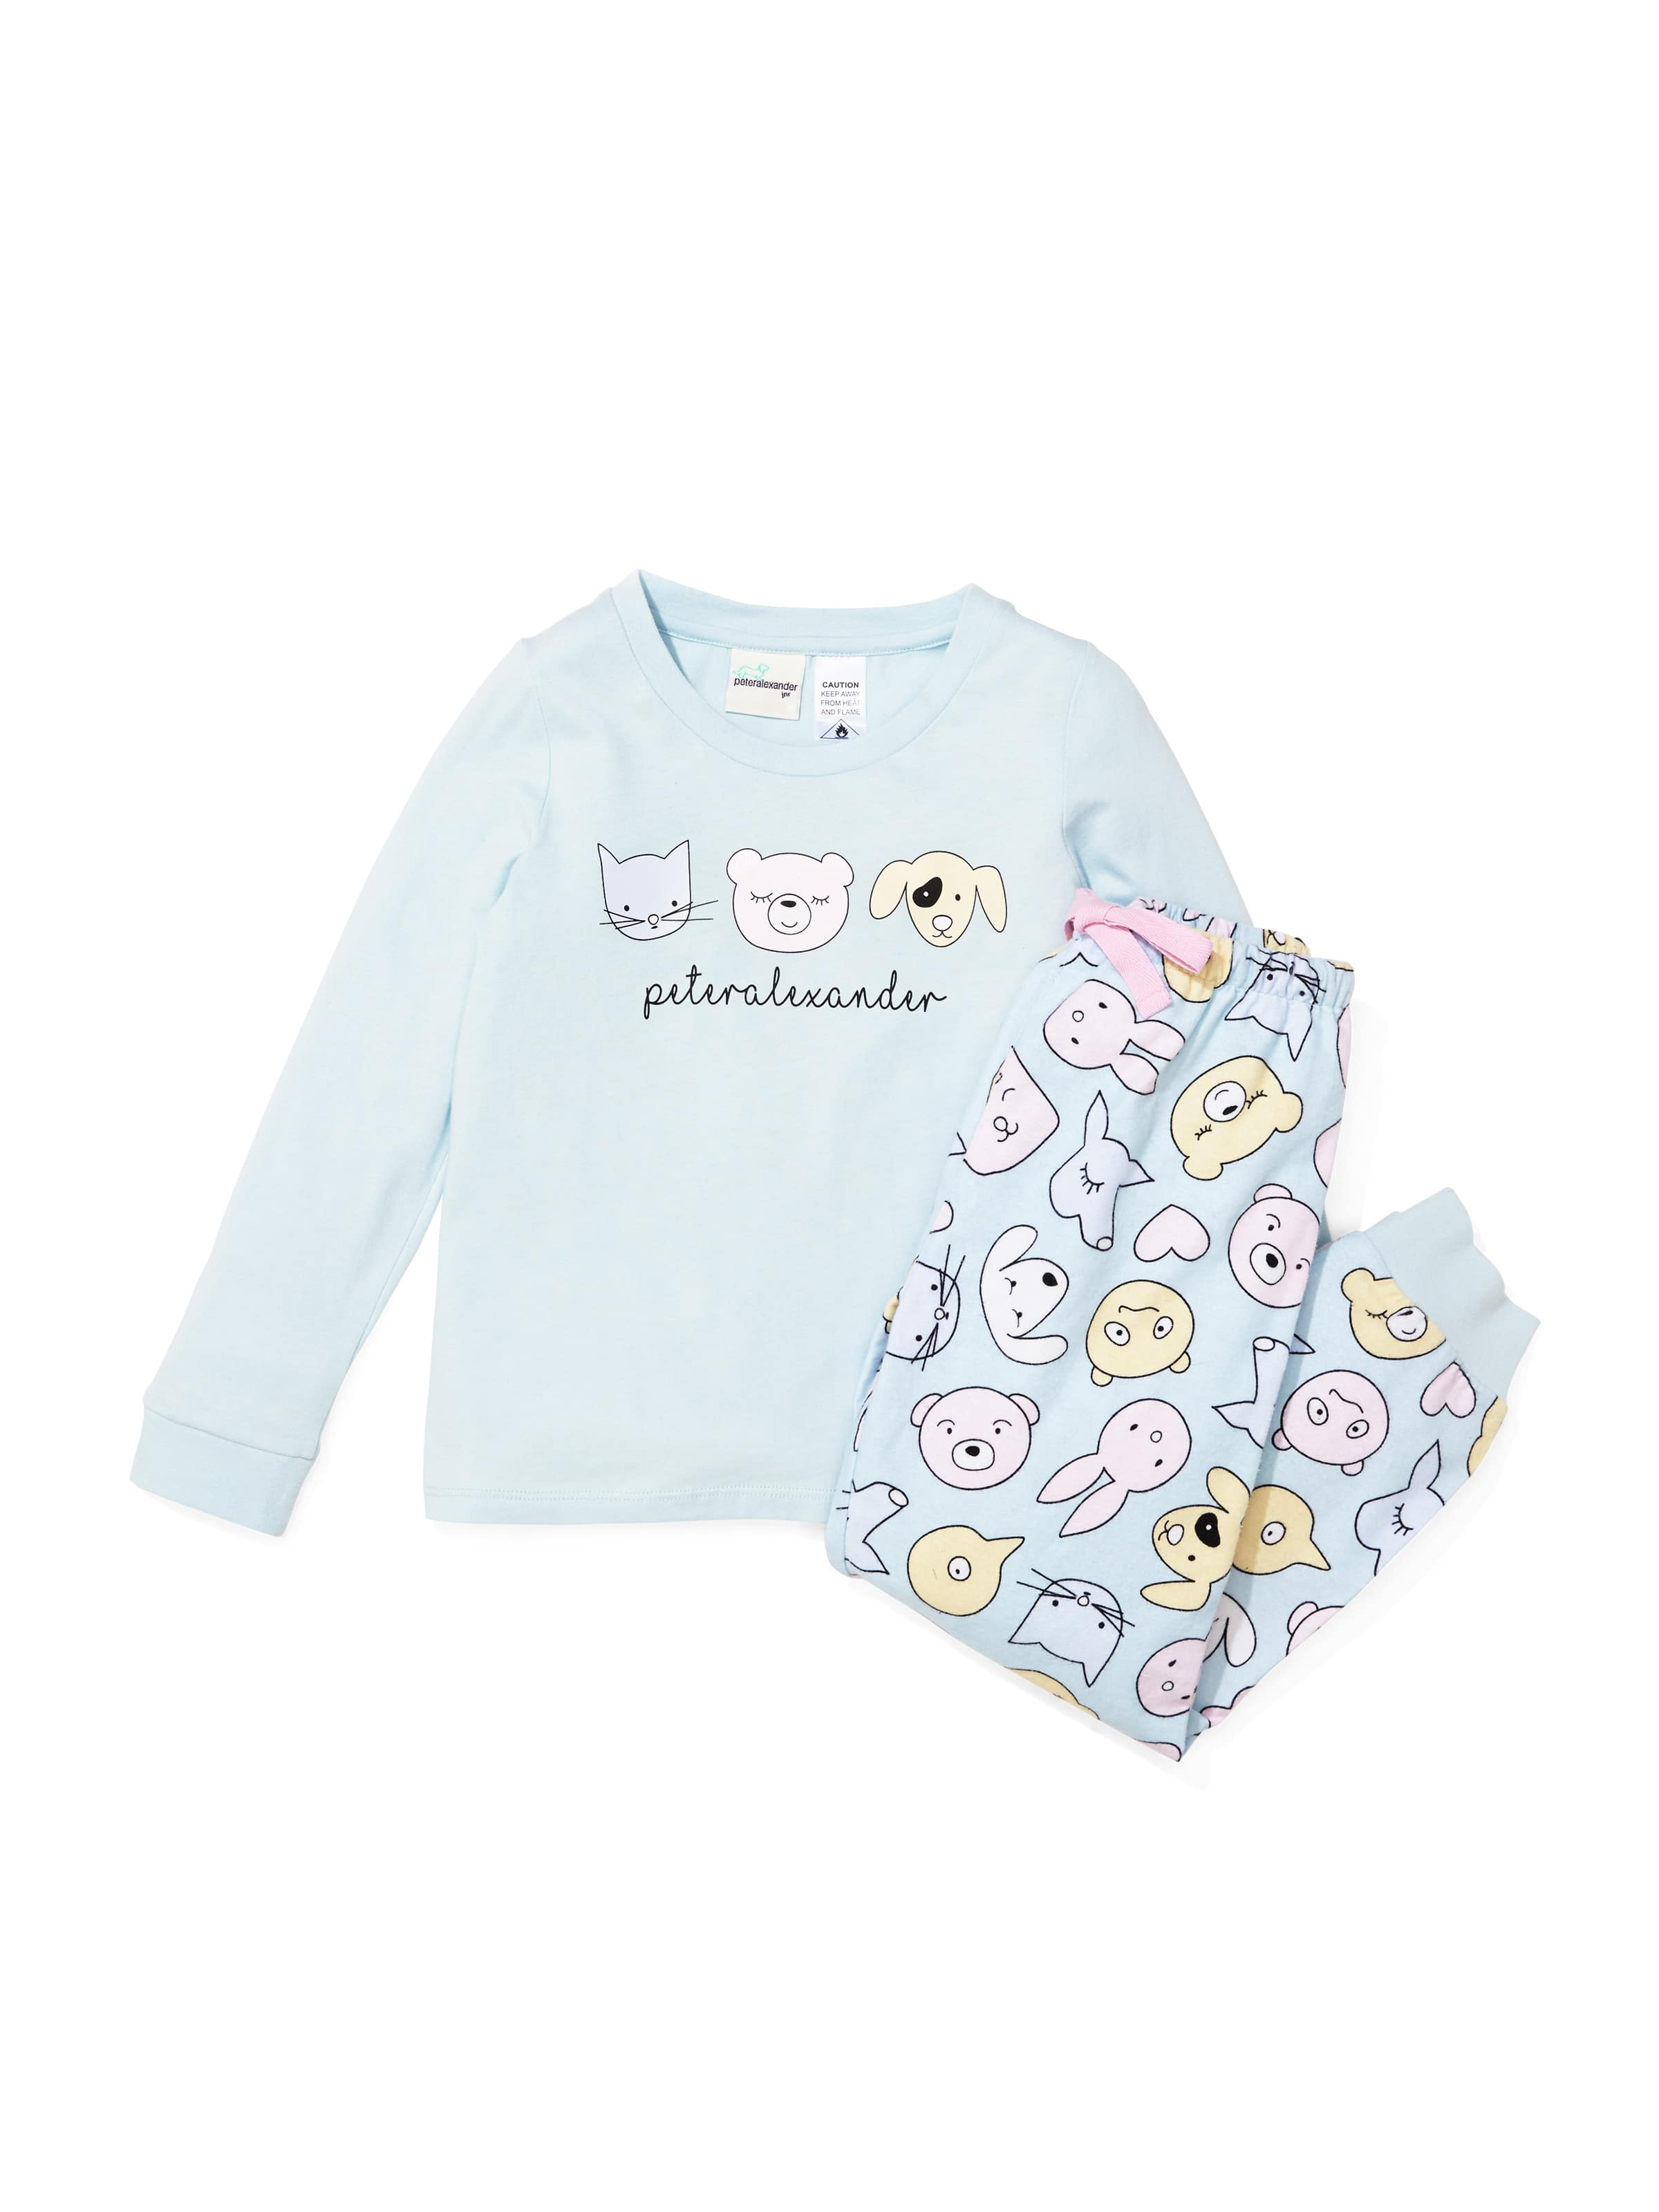 Jnr Girls Cute Animal Flannelette Pj Set